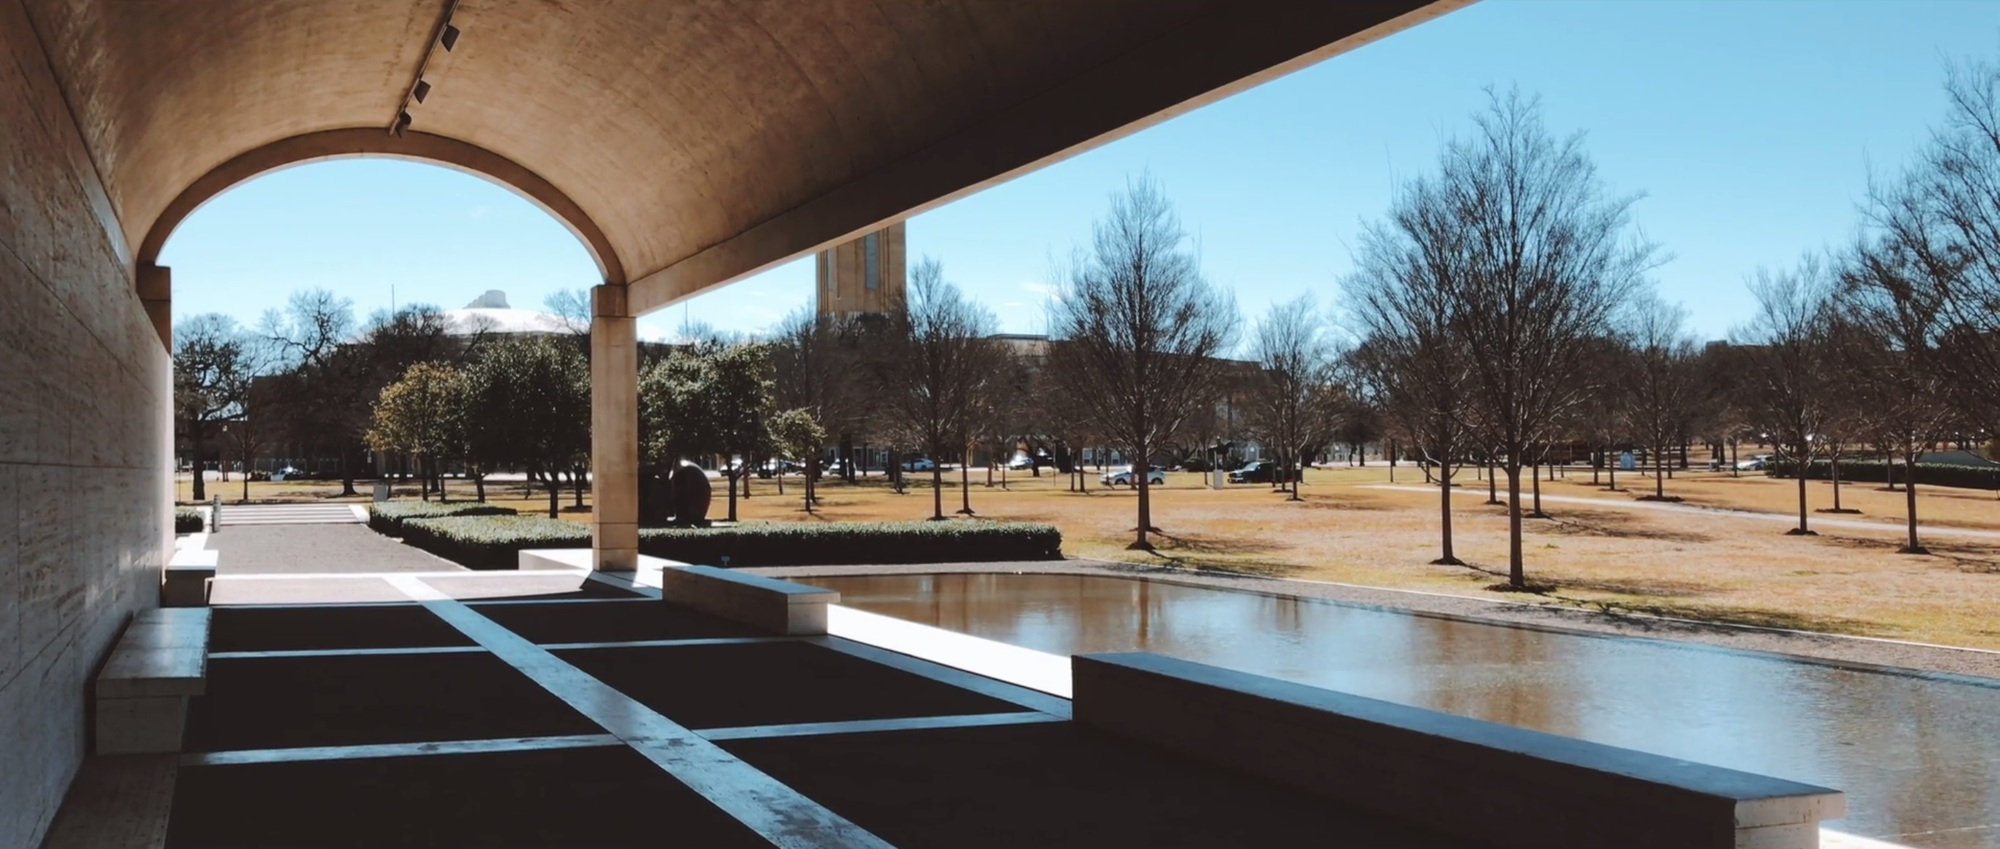 Louis Kahn and Renzo Piano: The Harmony Between Each Legend's Kimbell Museum Wing